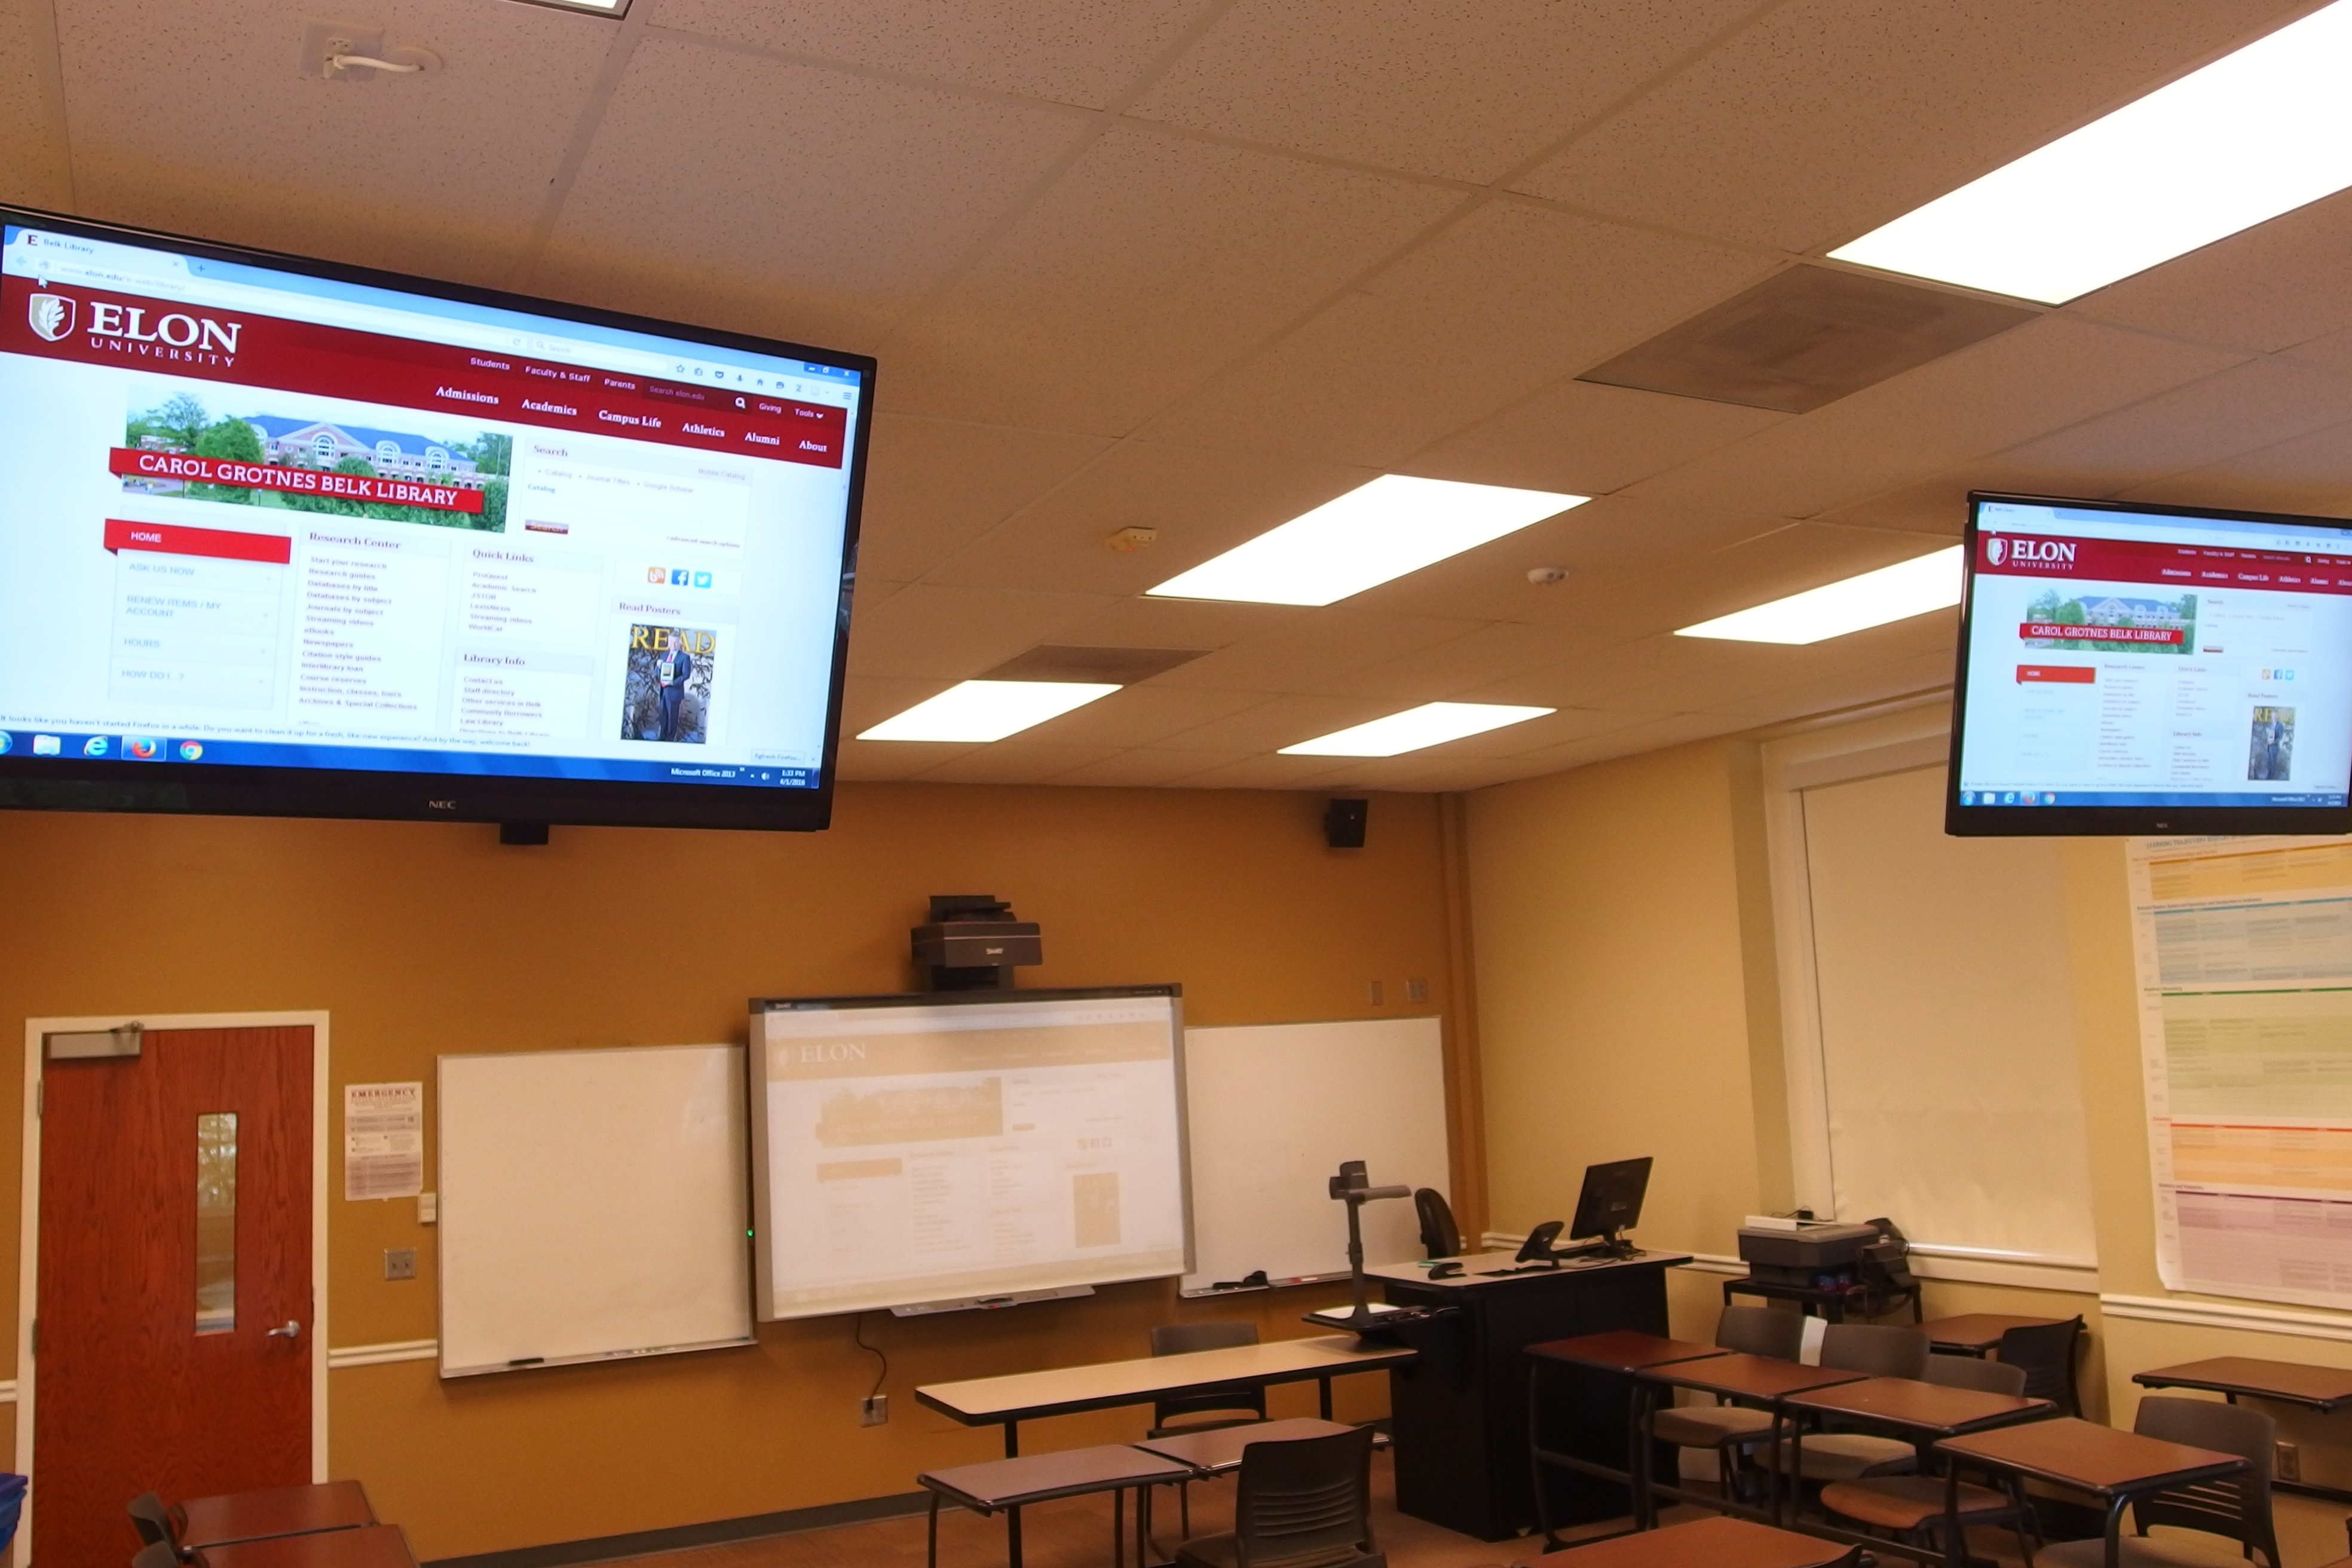 Photo of the classroom from the back left highlighting the ceiling mounted NEC tvs